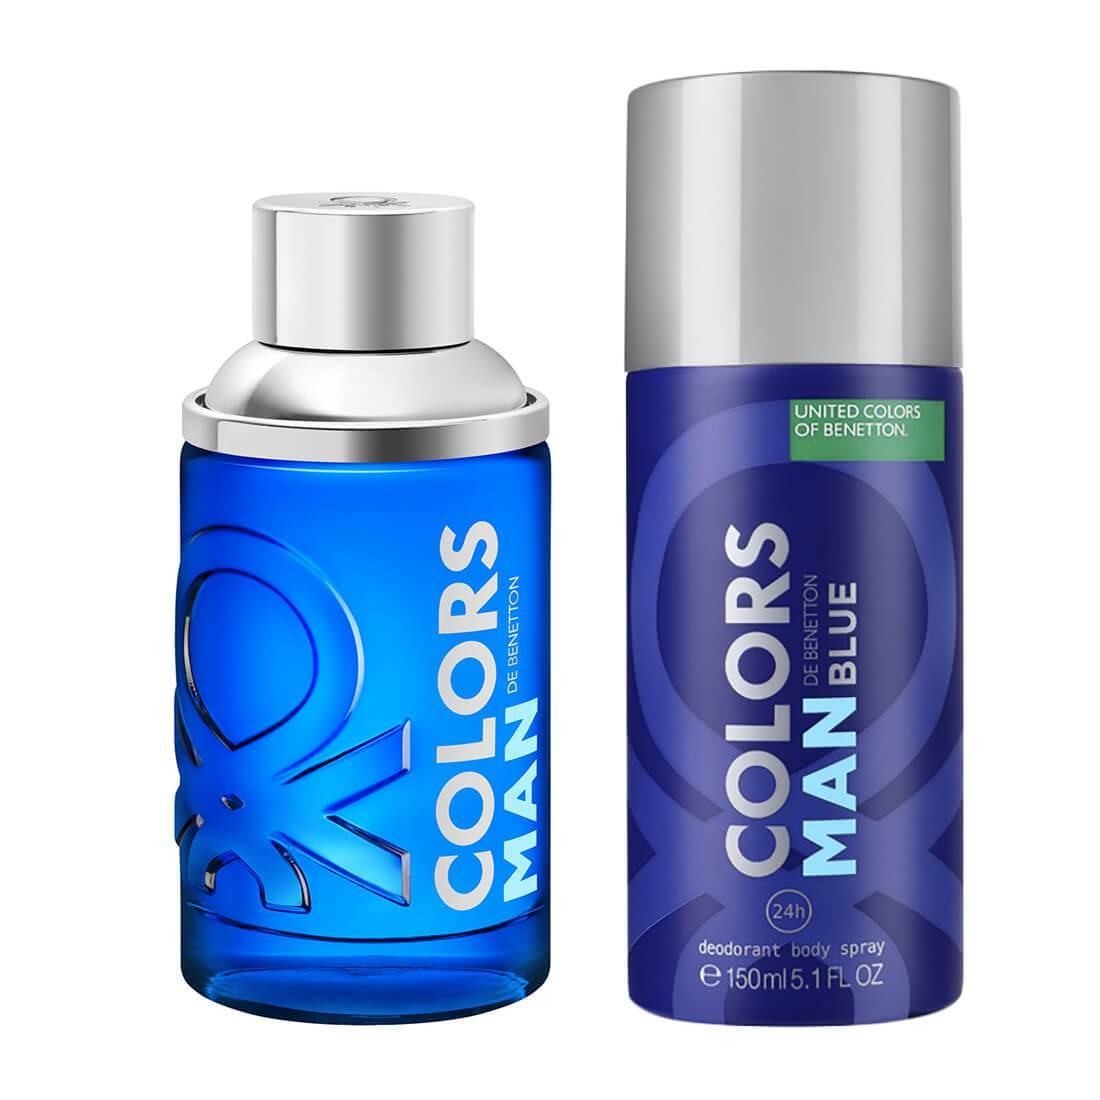 United Colors of Benetton Blue Perfume Gift Set For Men